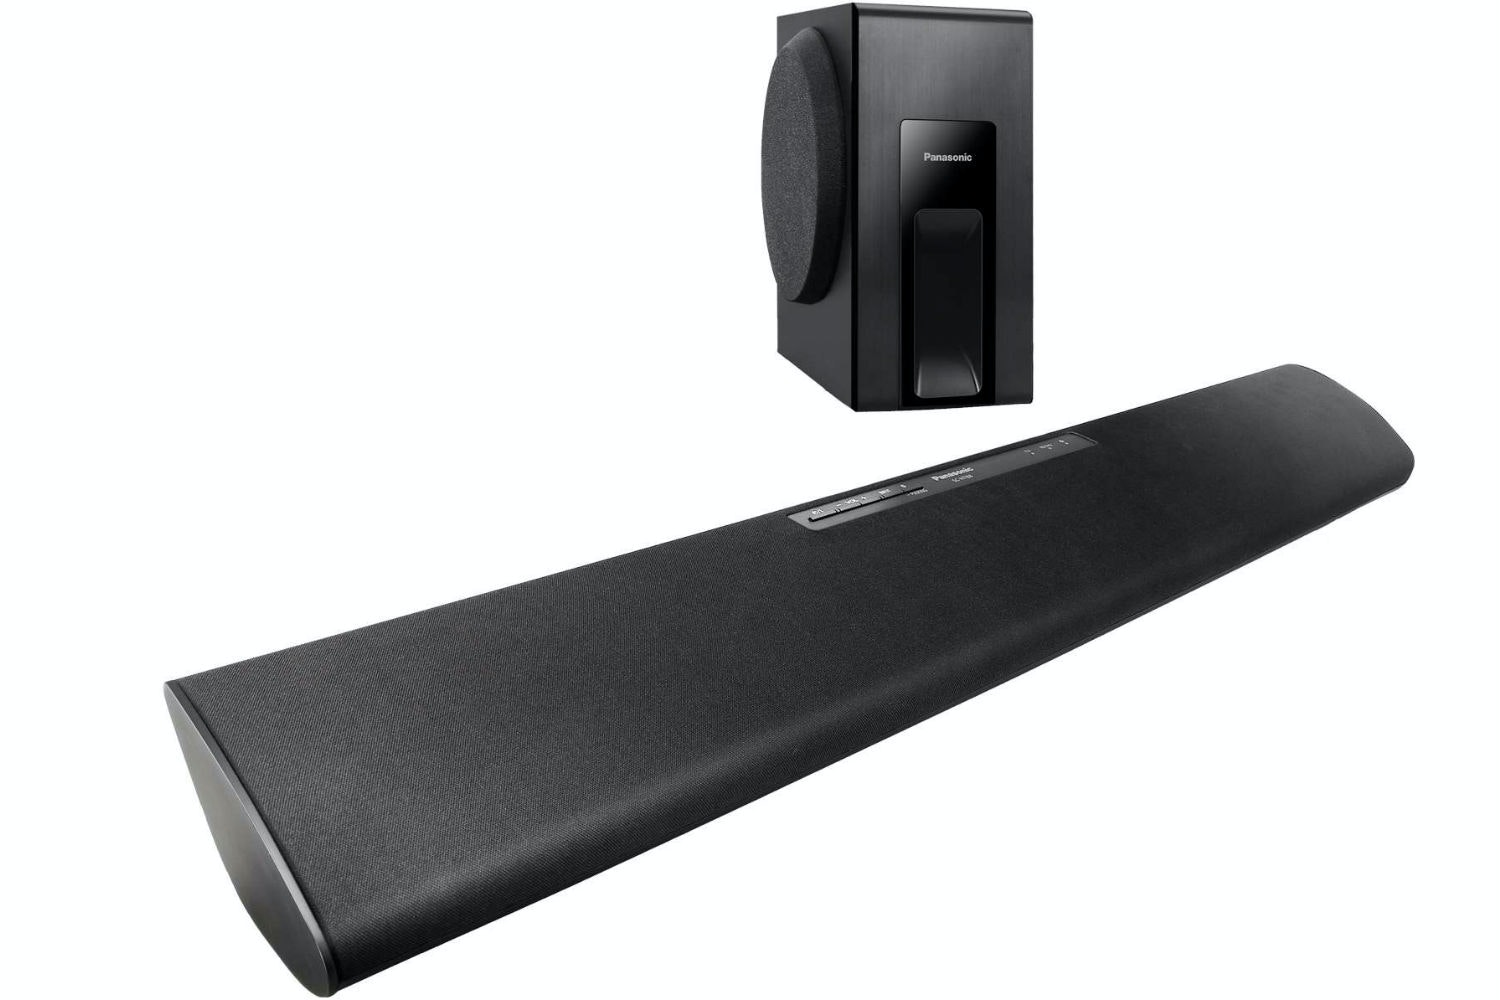 Panasonic SC-HTB18EB 120W Soundbar with Subwoofer